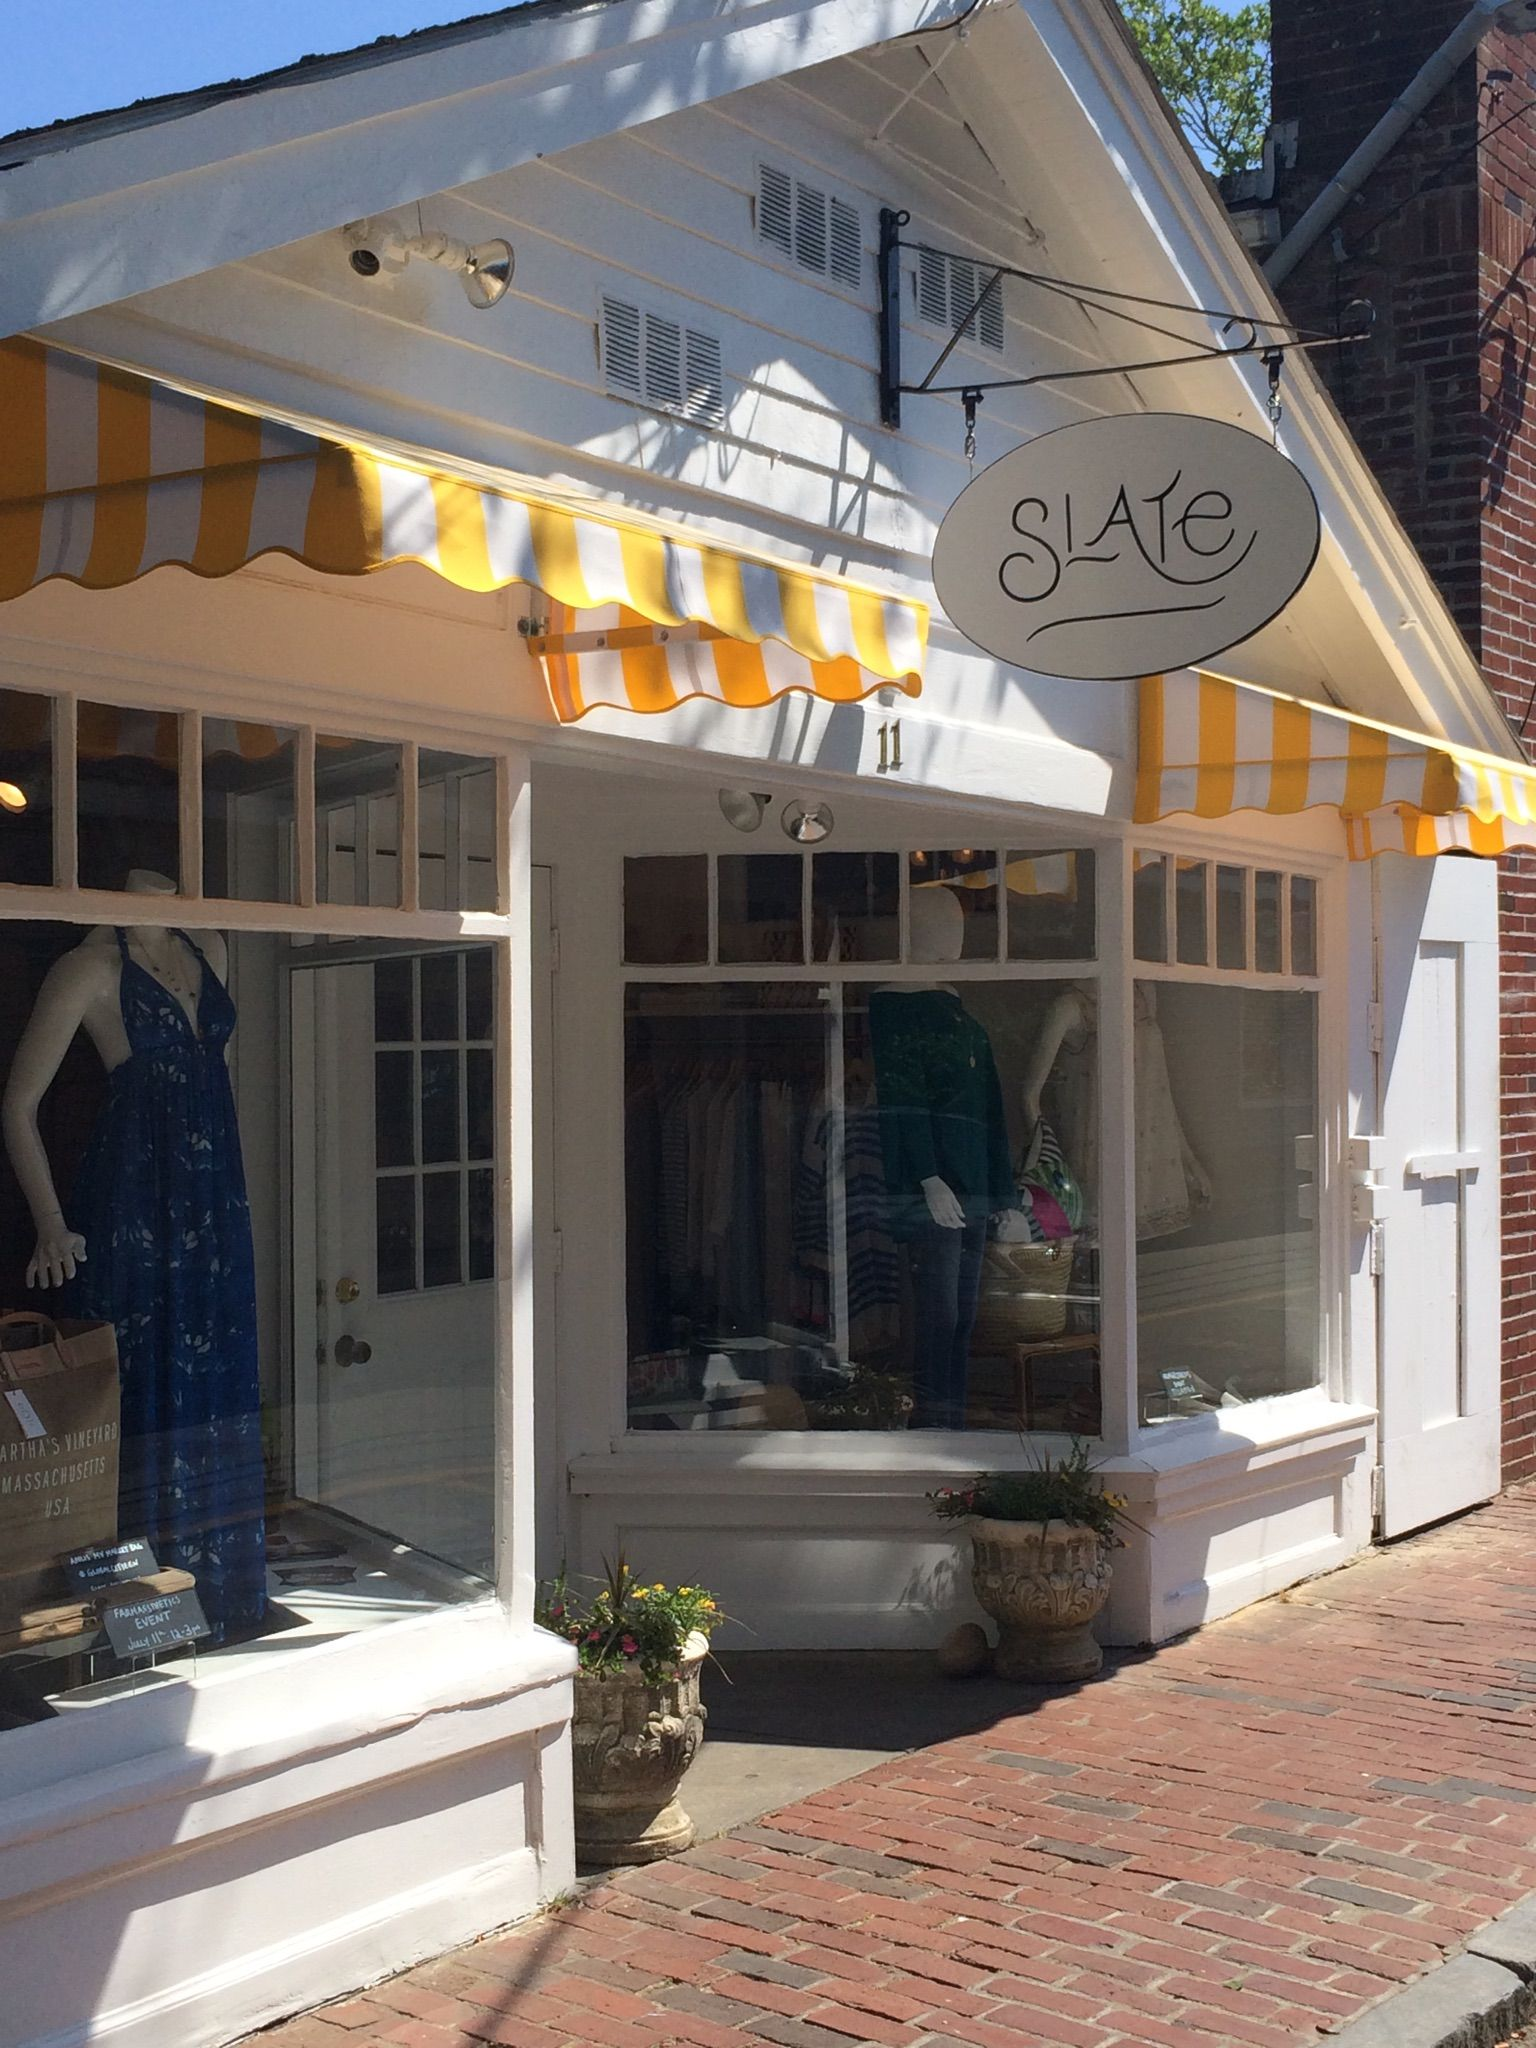 Slate S Store Front Hand Painted Sign Yellow And White Striped Awnings Awning Sunbrella Awning Fabric Awning